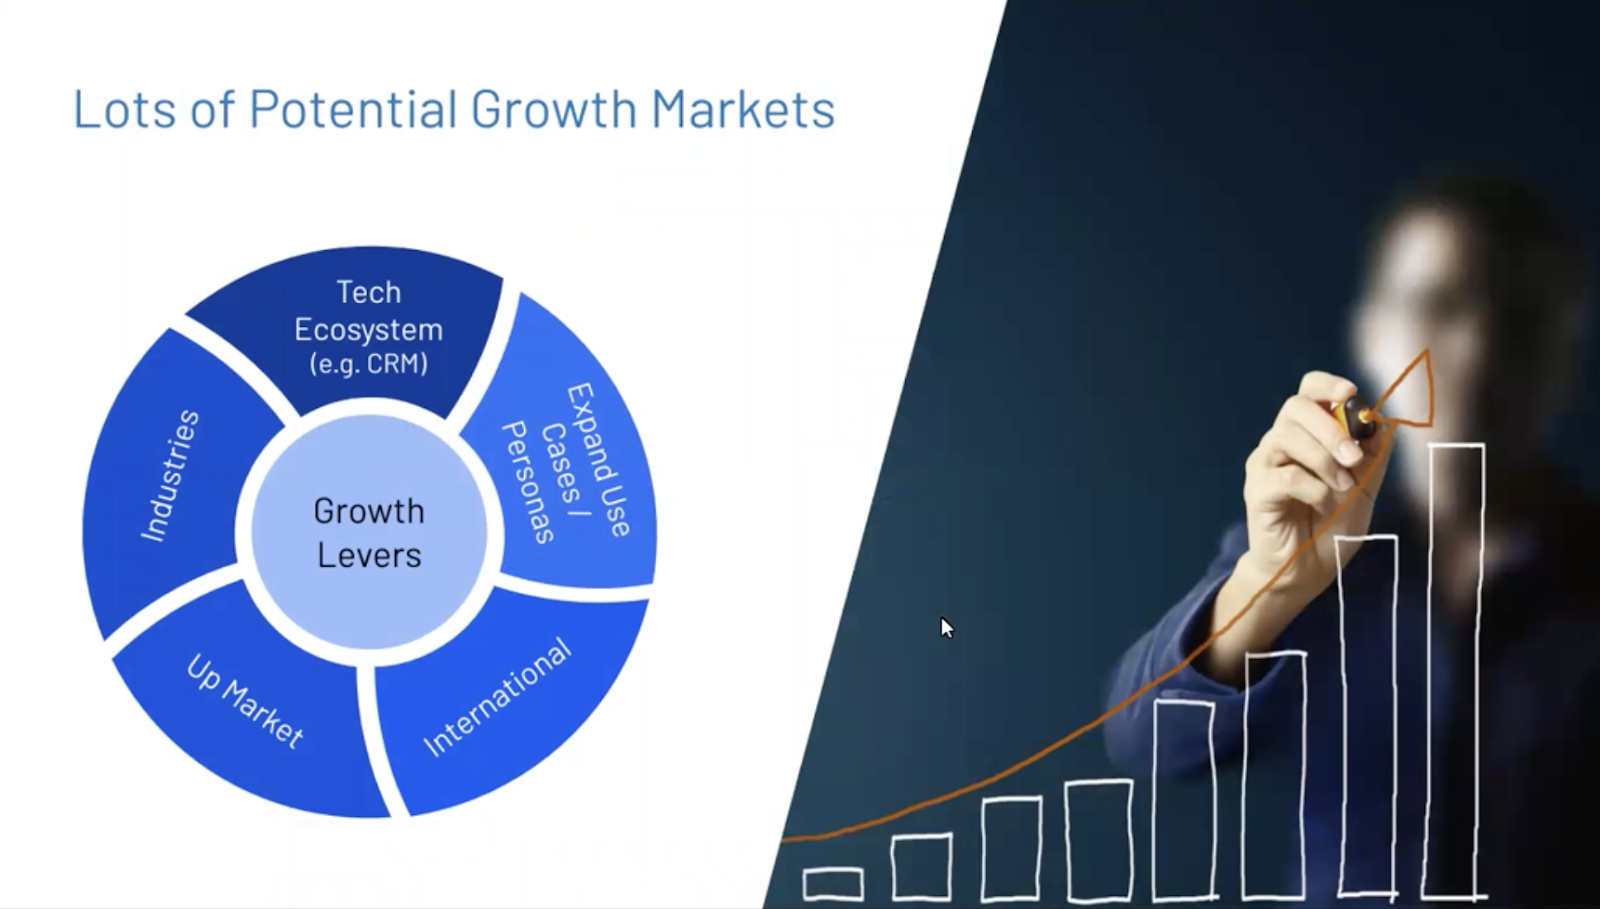 There are lots of potential growth markets.